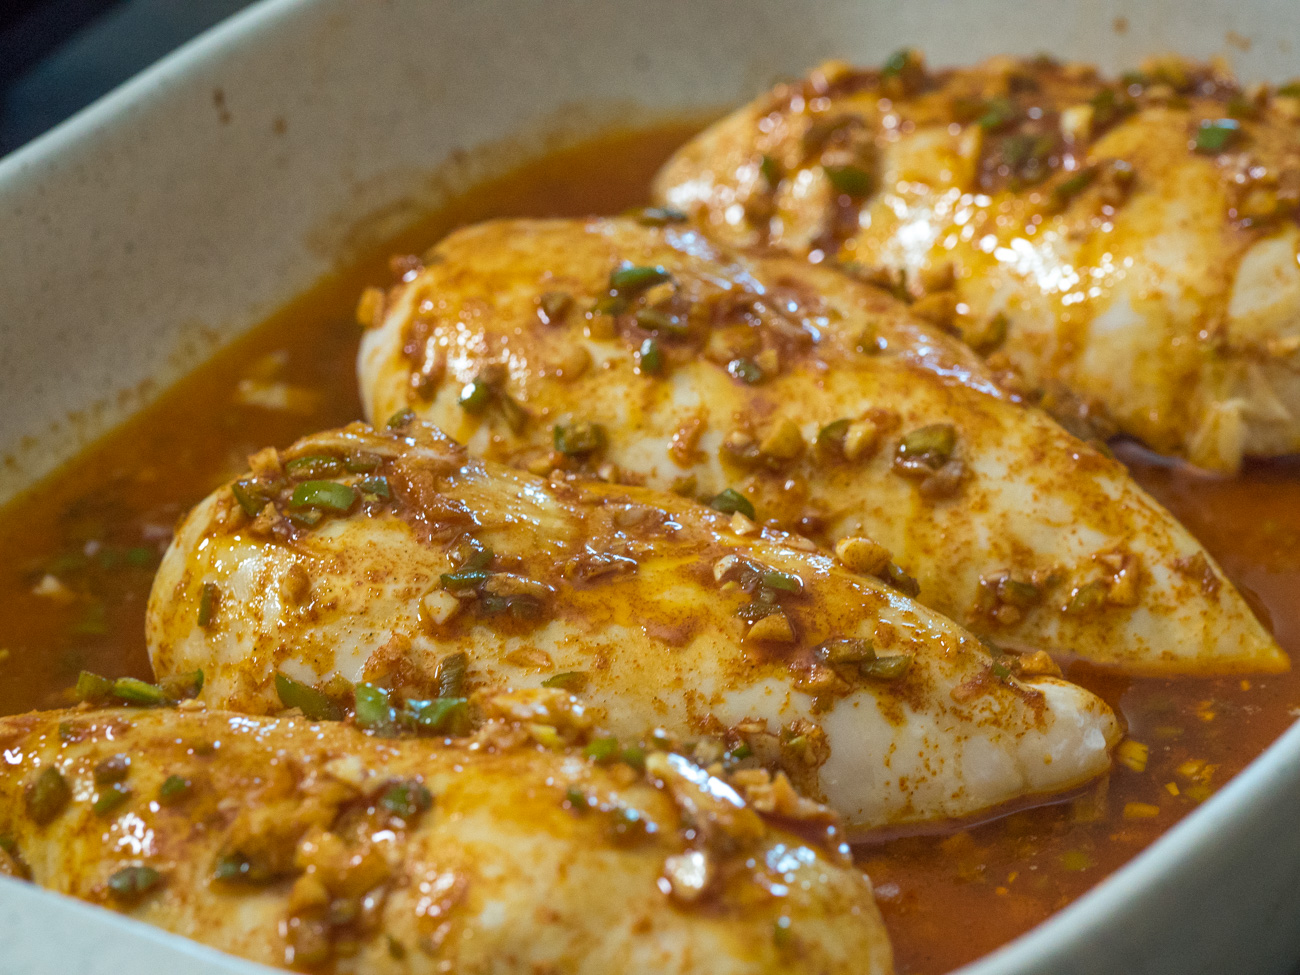 Remove chicken from pan and coat with piri piri sauce. Sauté for 2-3 minutes on each side for seared flavor.